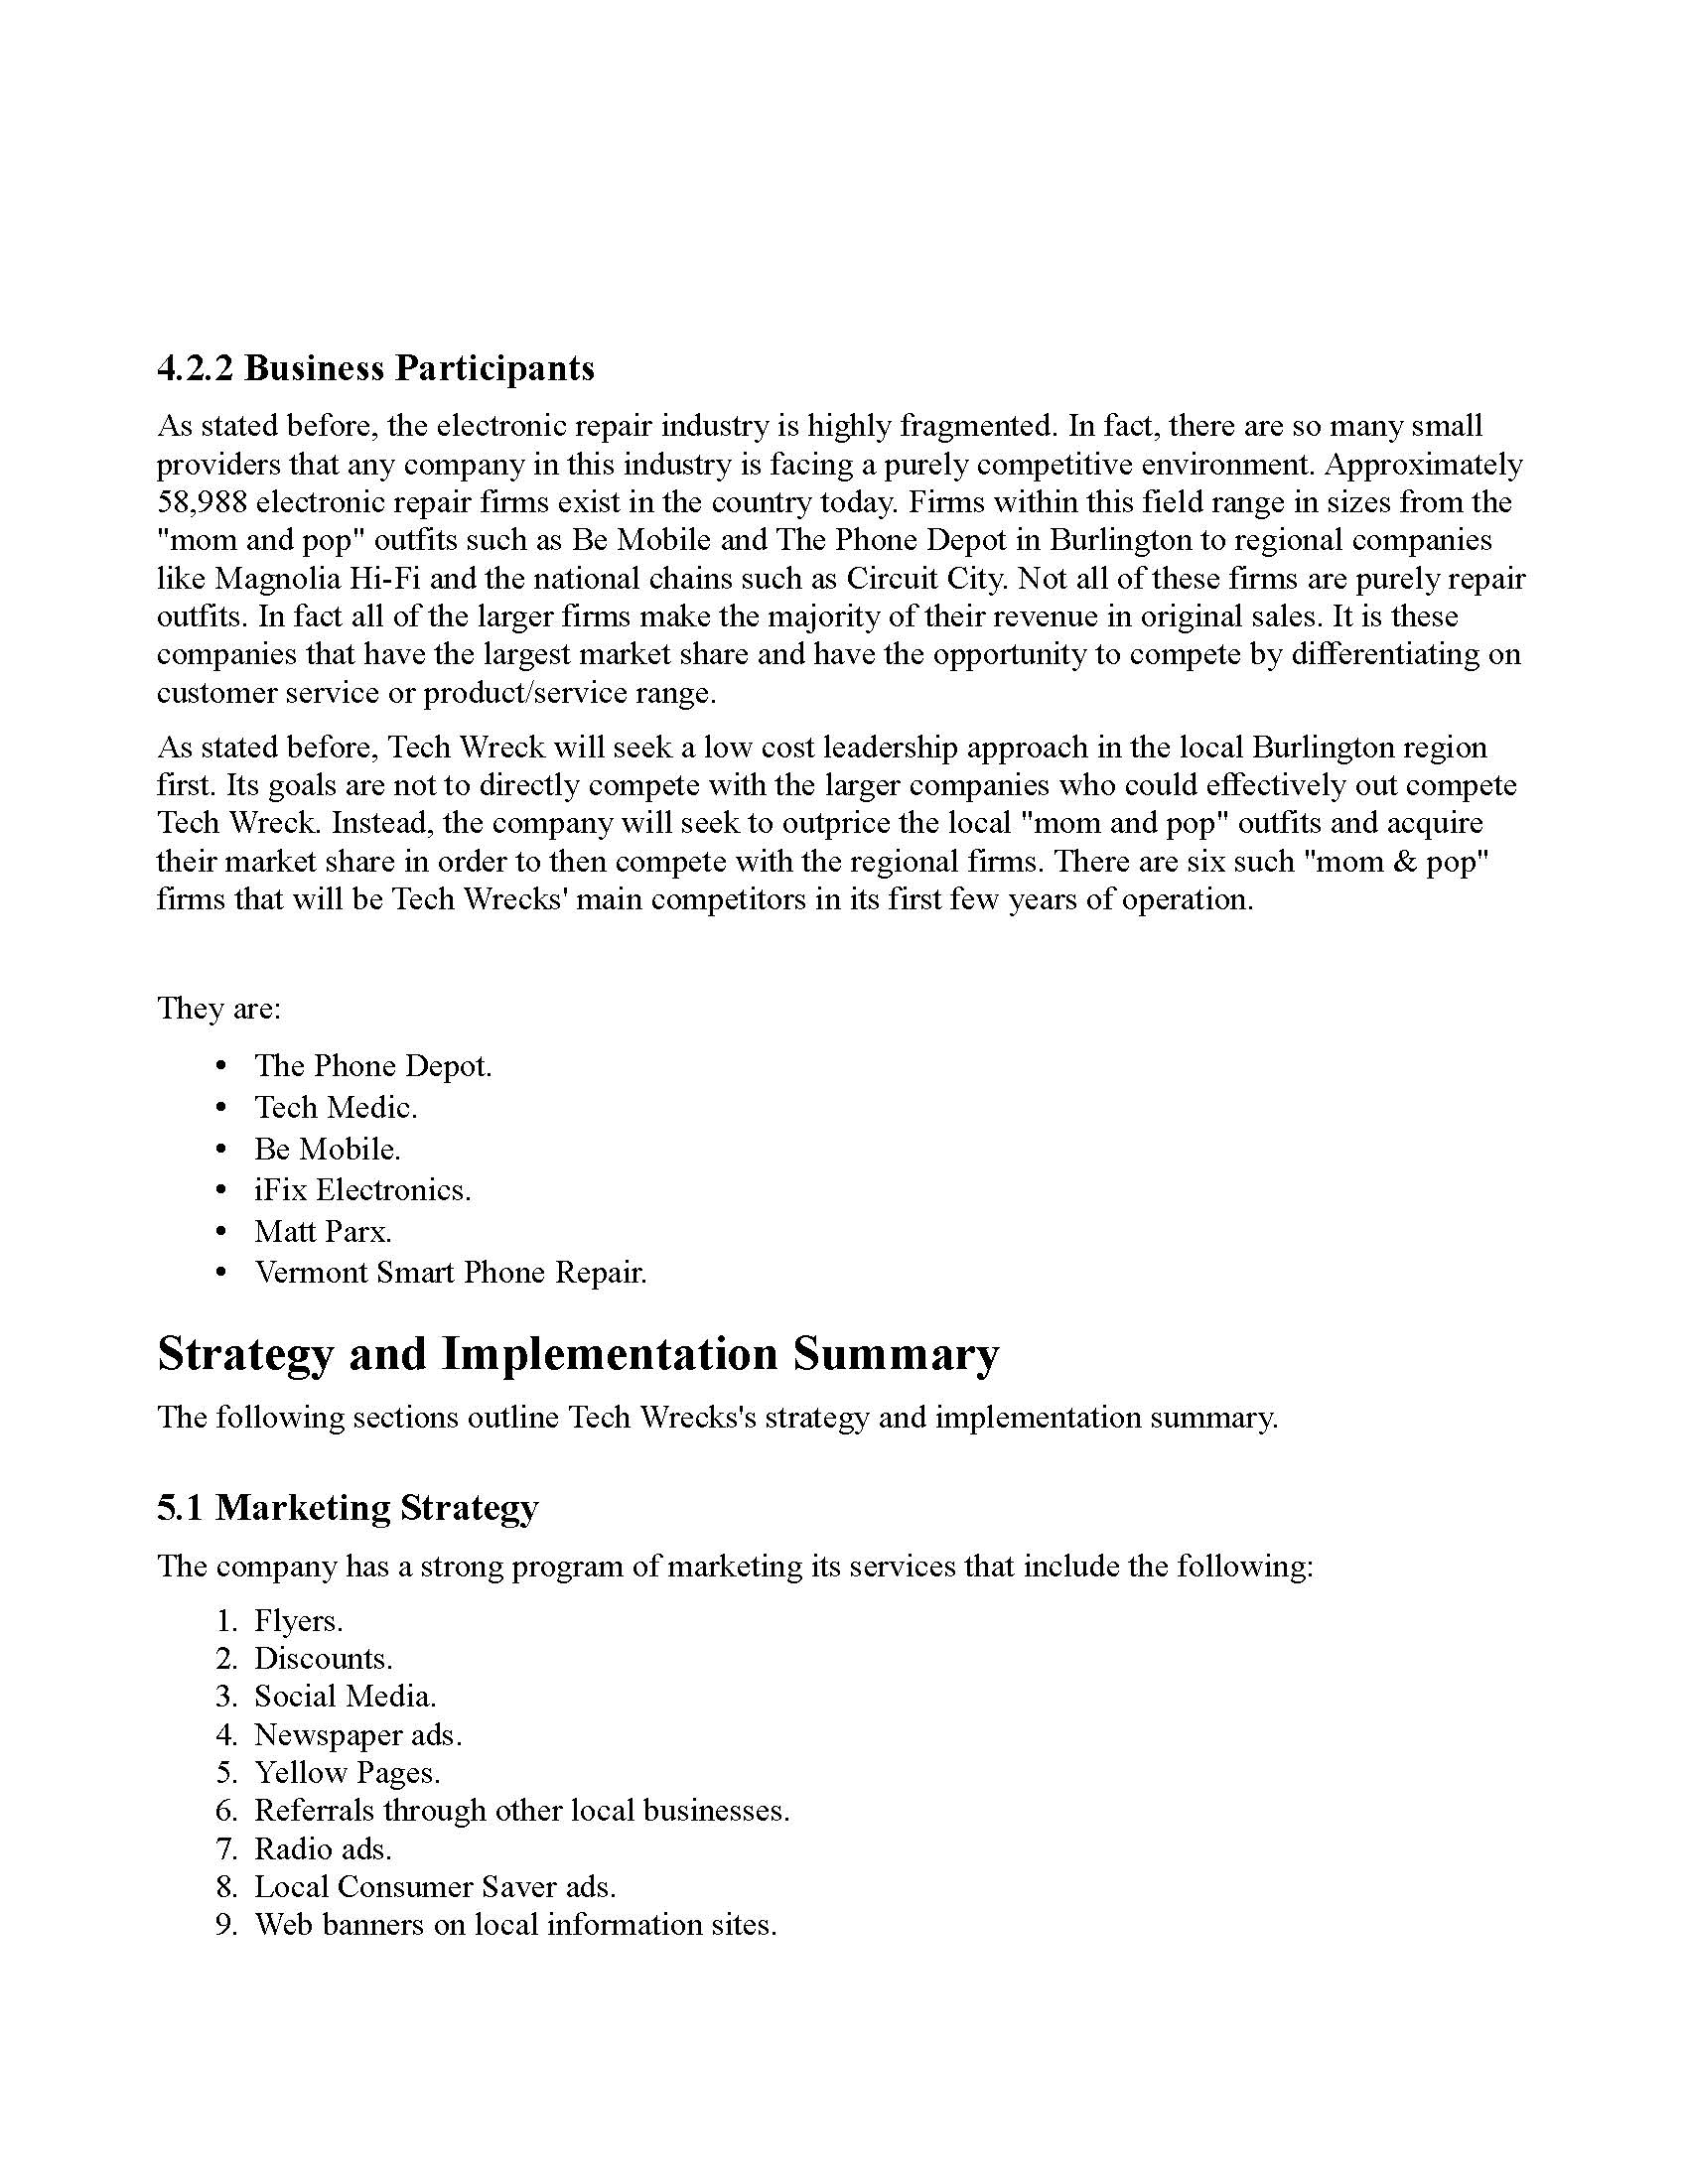 Tech Wreck 3 Year Business Plan_Page_12.jpg